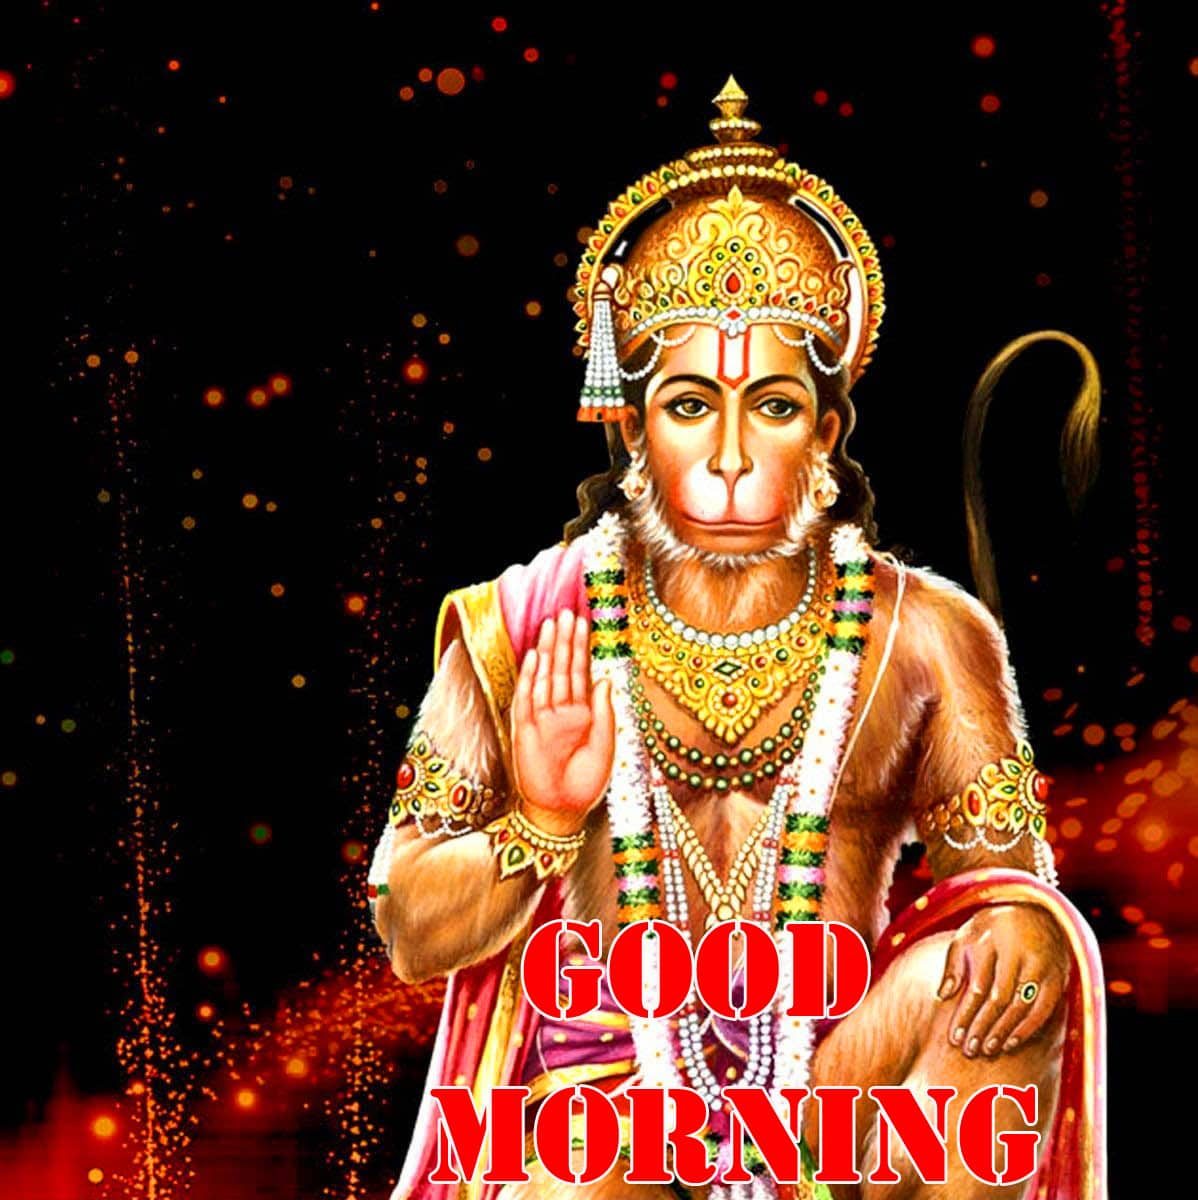 Good Morning Wishes photo Free HD Download